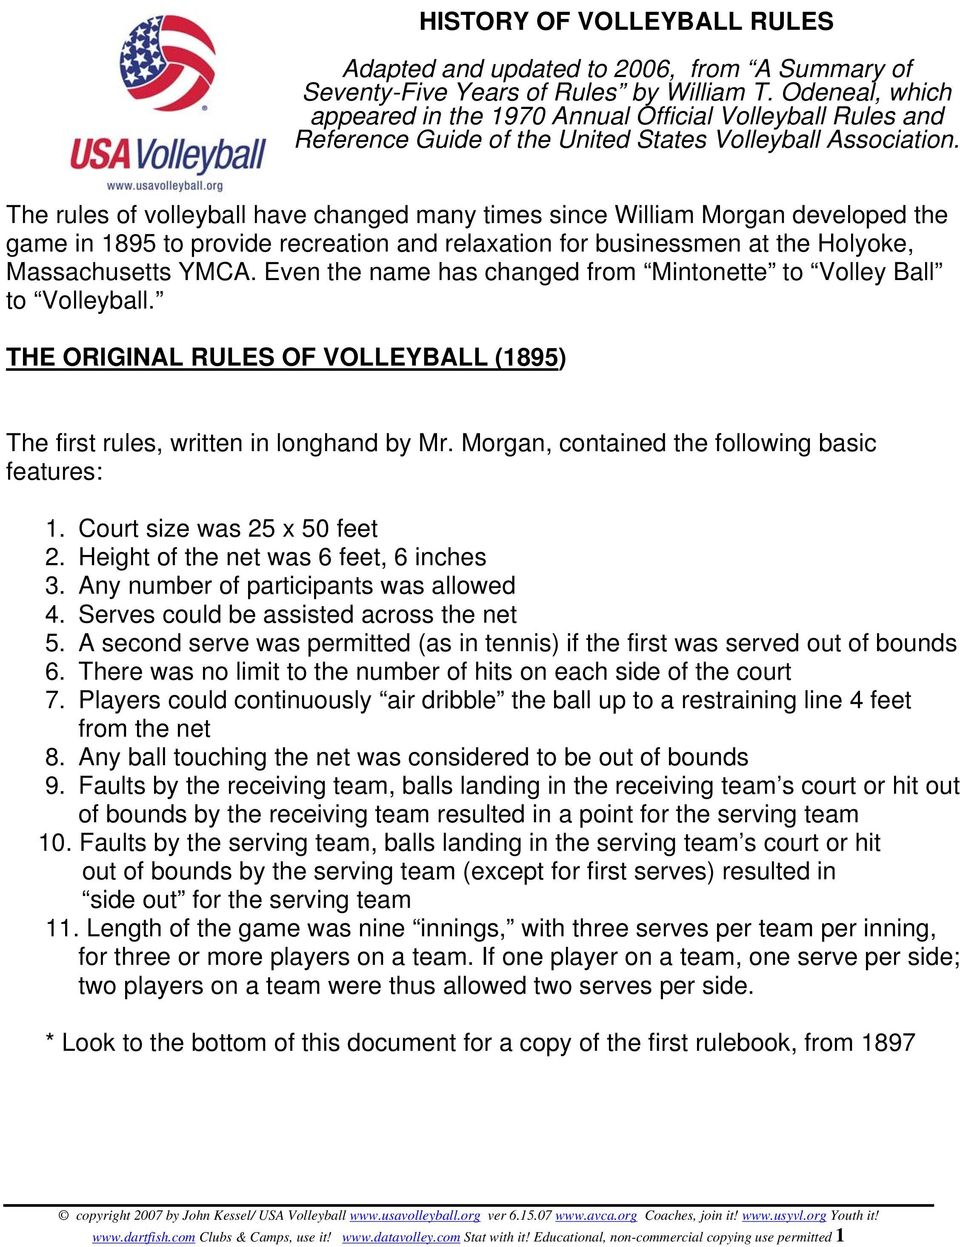 The rules of volleyball have changed many times since William Morgan developed the game in 1895 to provide recreation and relaxation for businessmen at the Holyoke, Massachusetts YMCA.